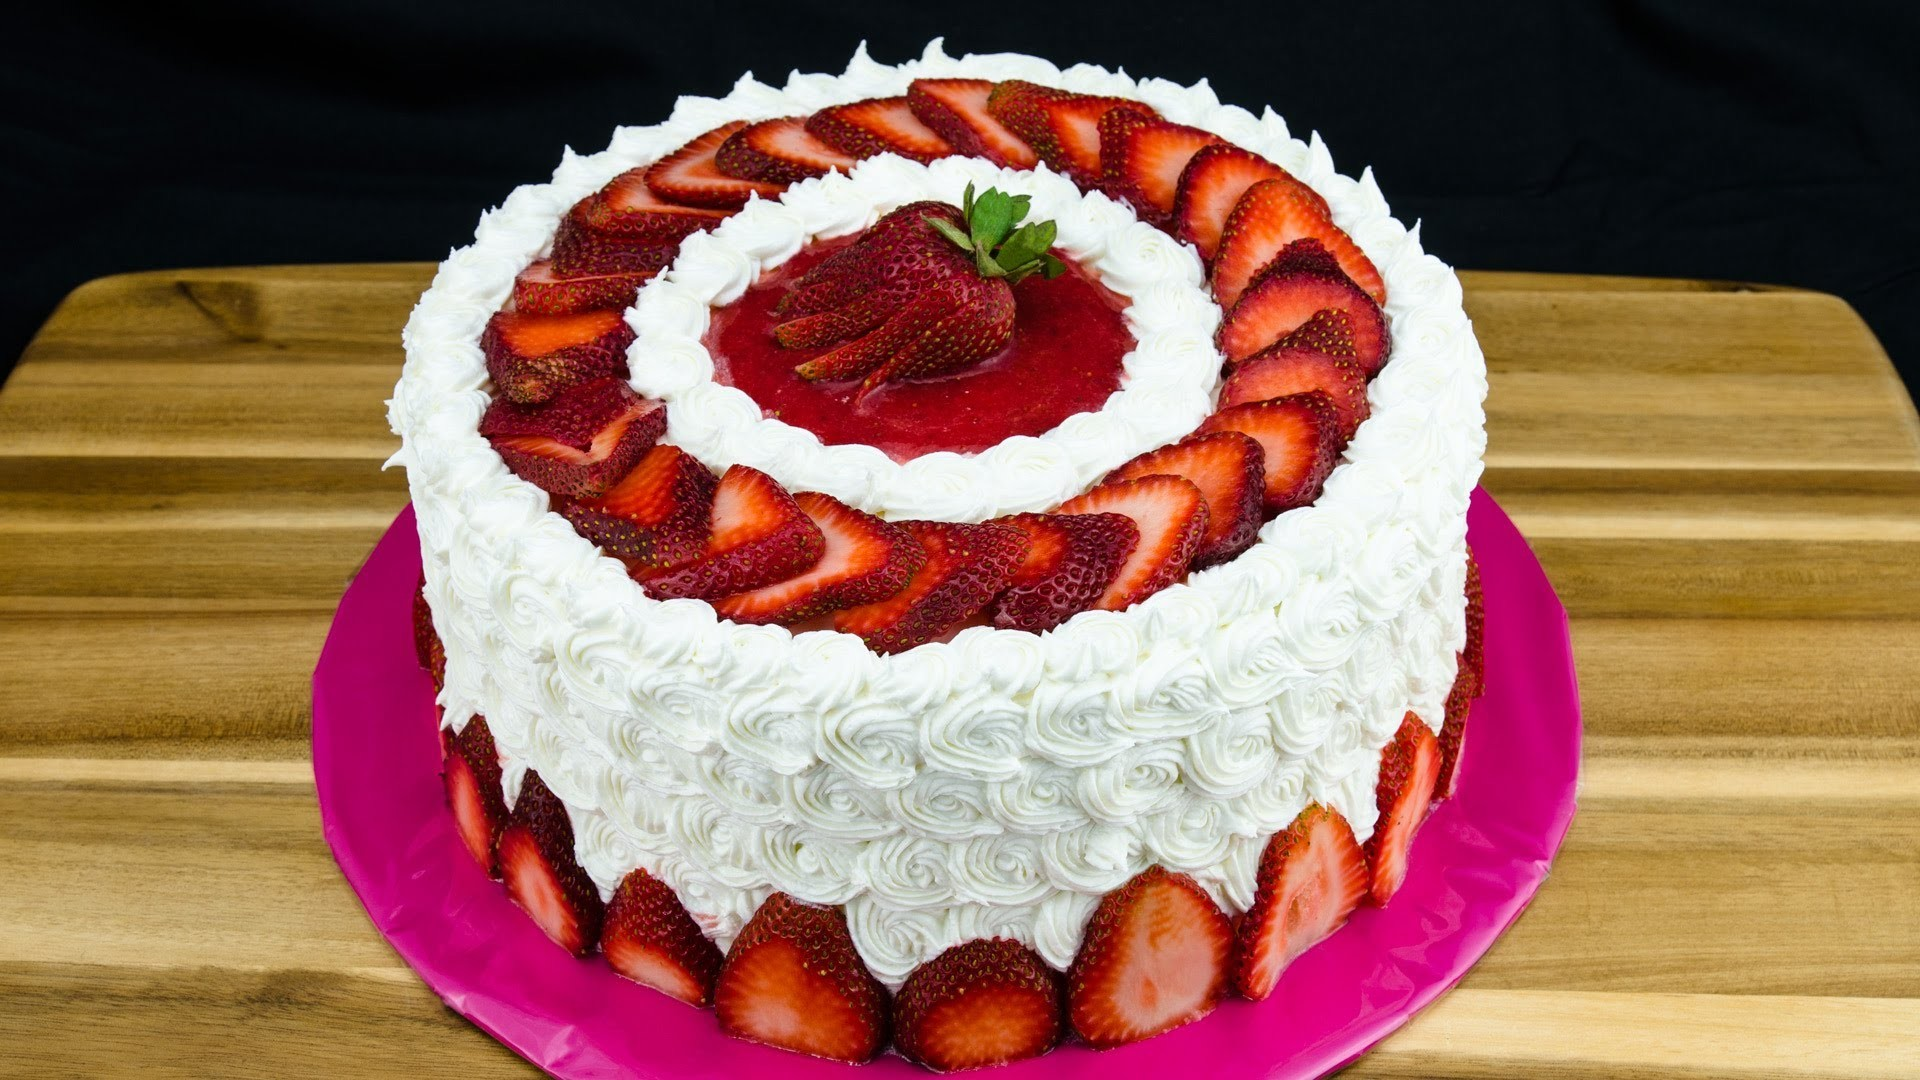 Strawberry Cake Recipe: How to Make Strawberry Cake by Cookies Cupcakes and Cardio